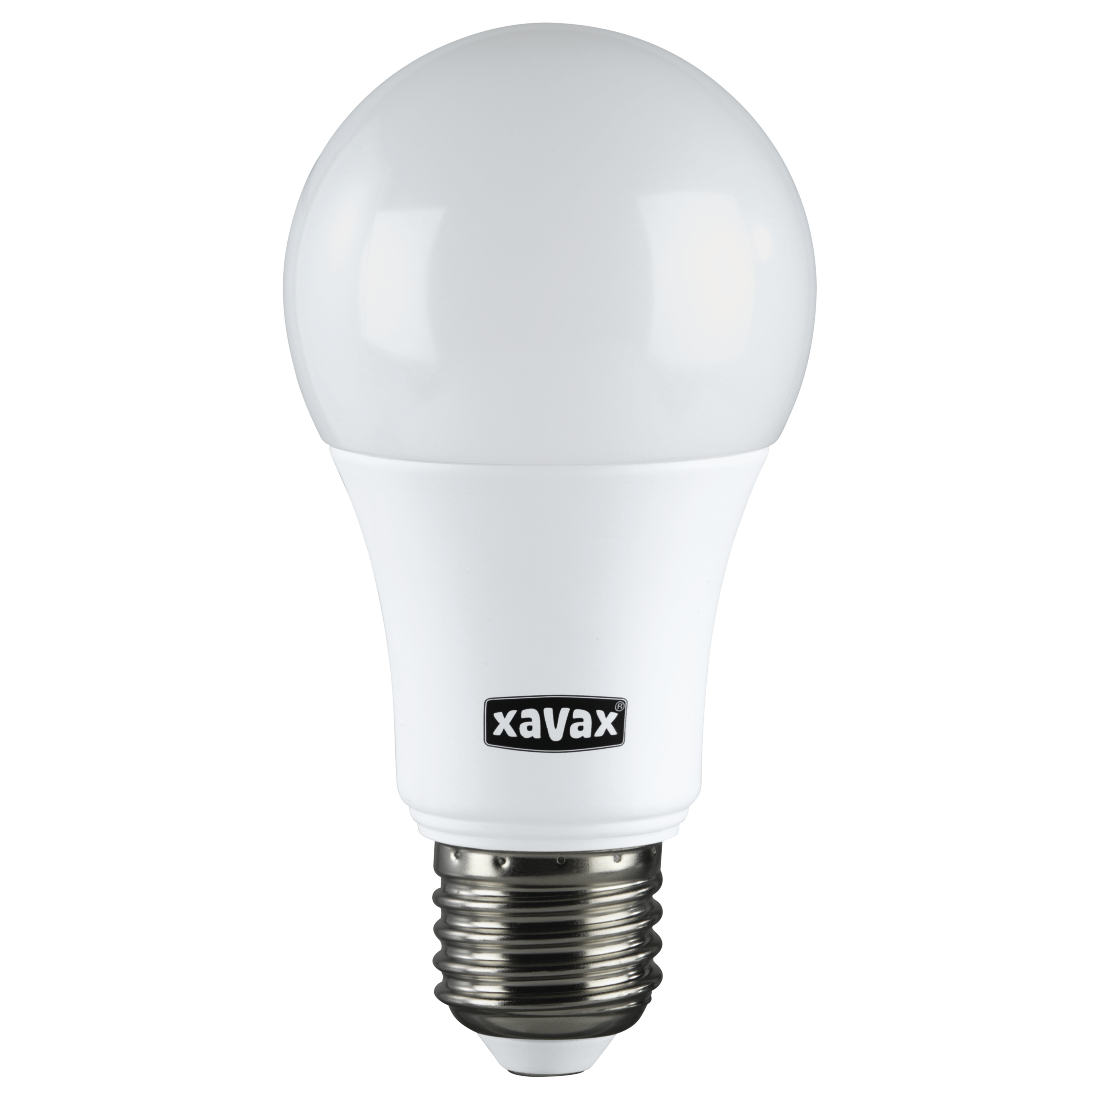 abx High-Res Image - Xavax, Ampoule LED High Line, 9,2W, forme classique, E27, blanc chaud,RA90